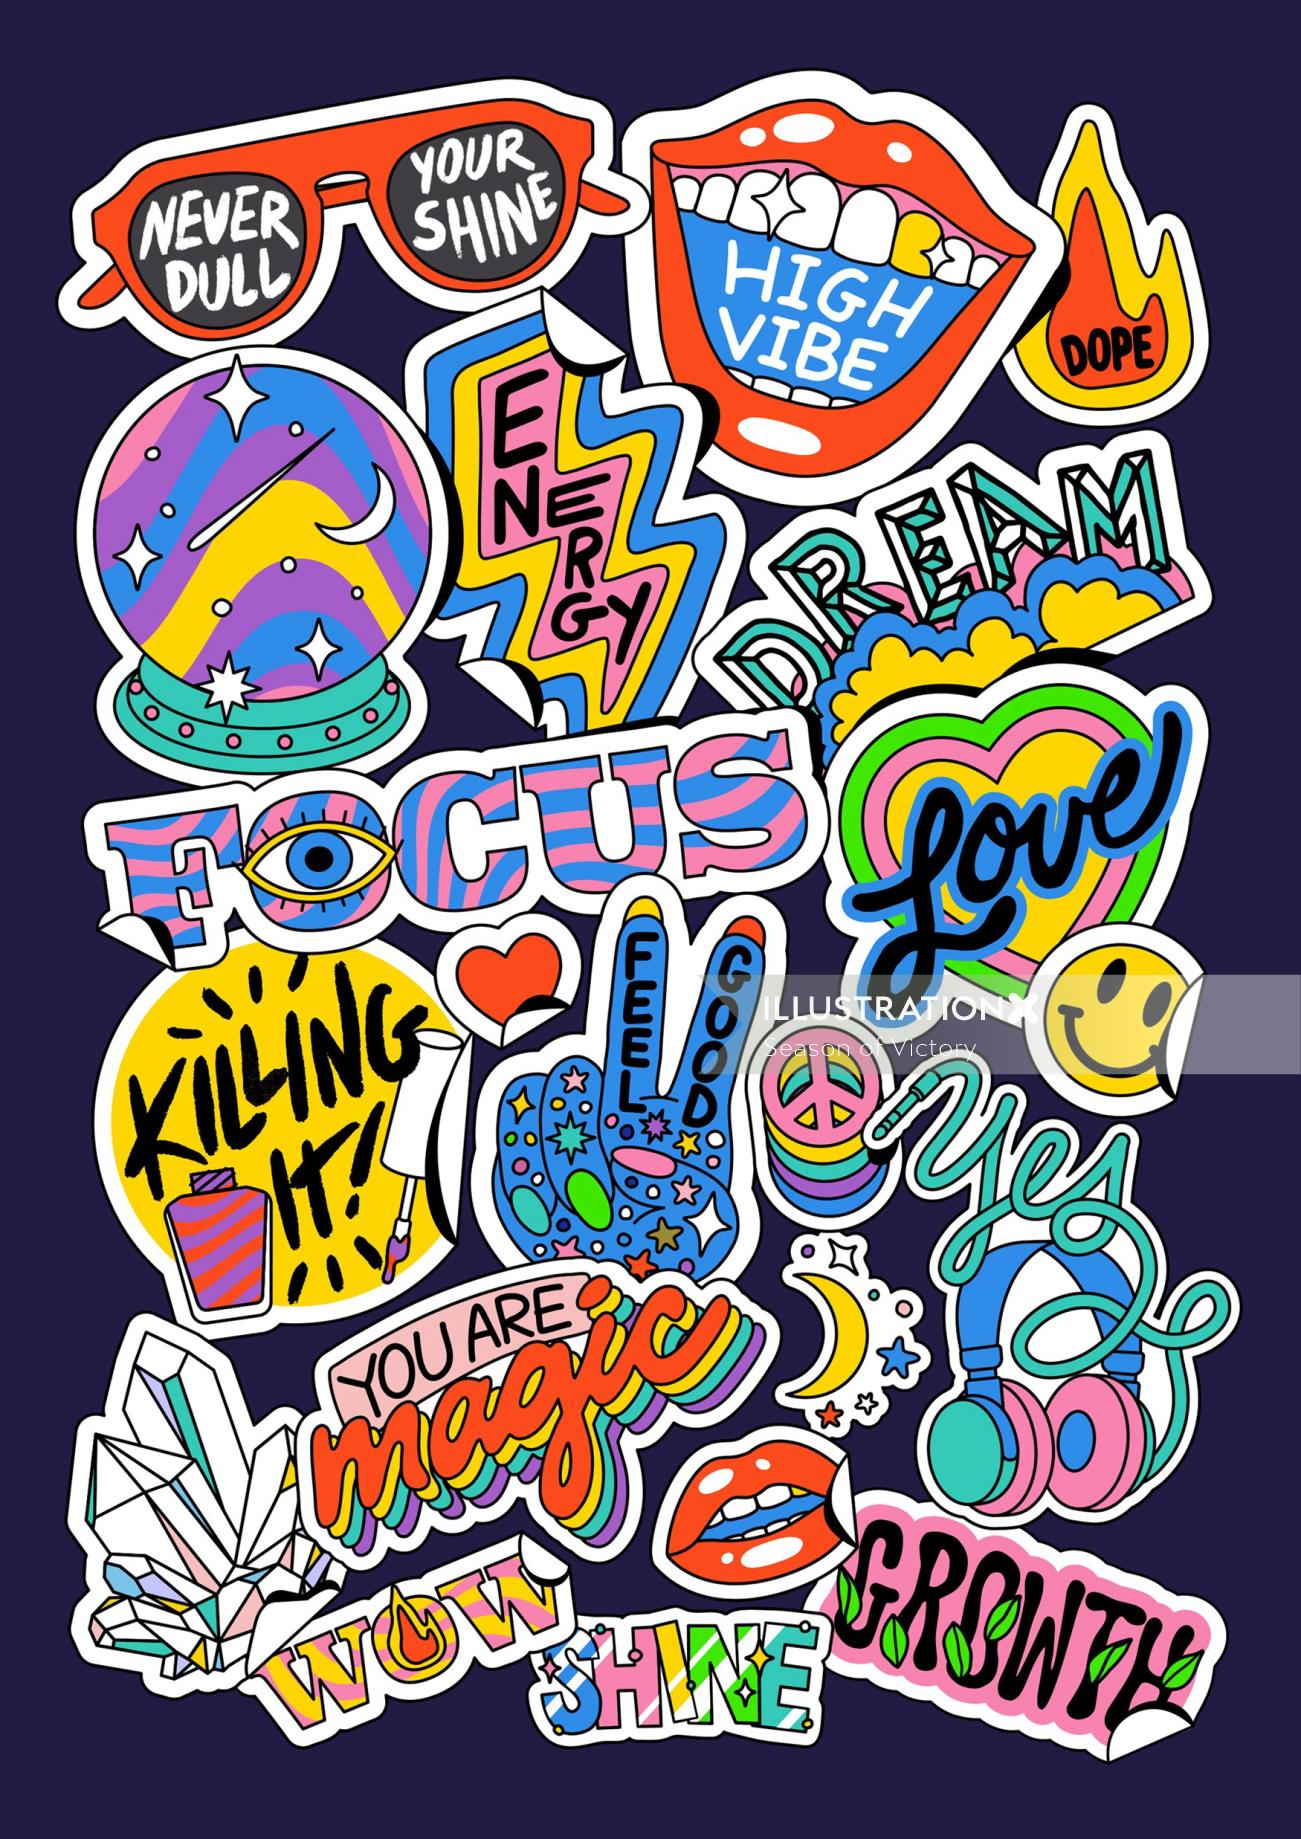 stickers, sticker, gif, giphystickers, fun, colorful, growth, mood, energetic, packaging, pattern, m